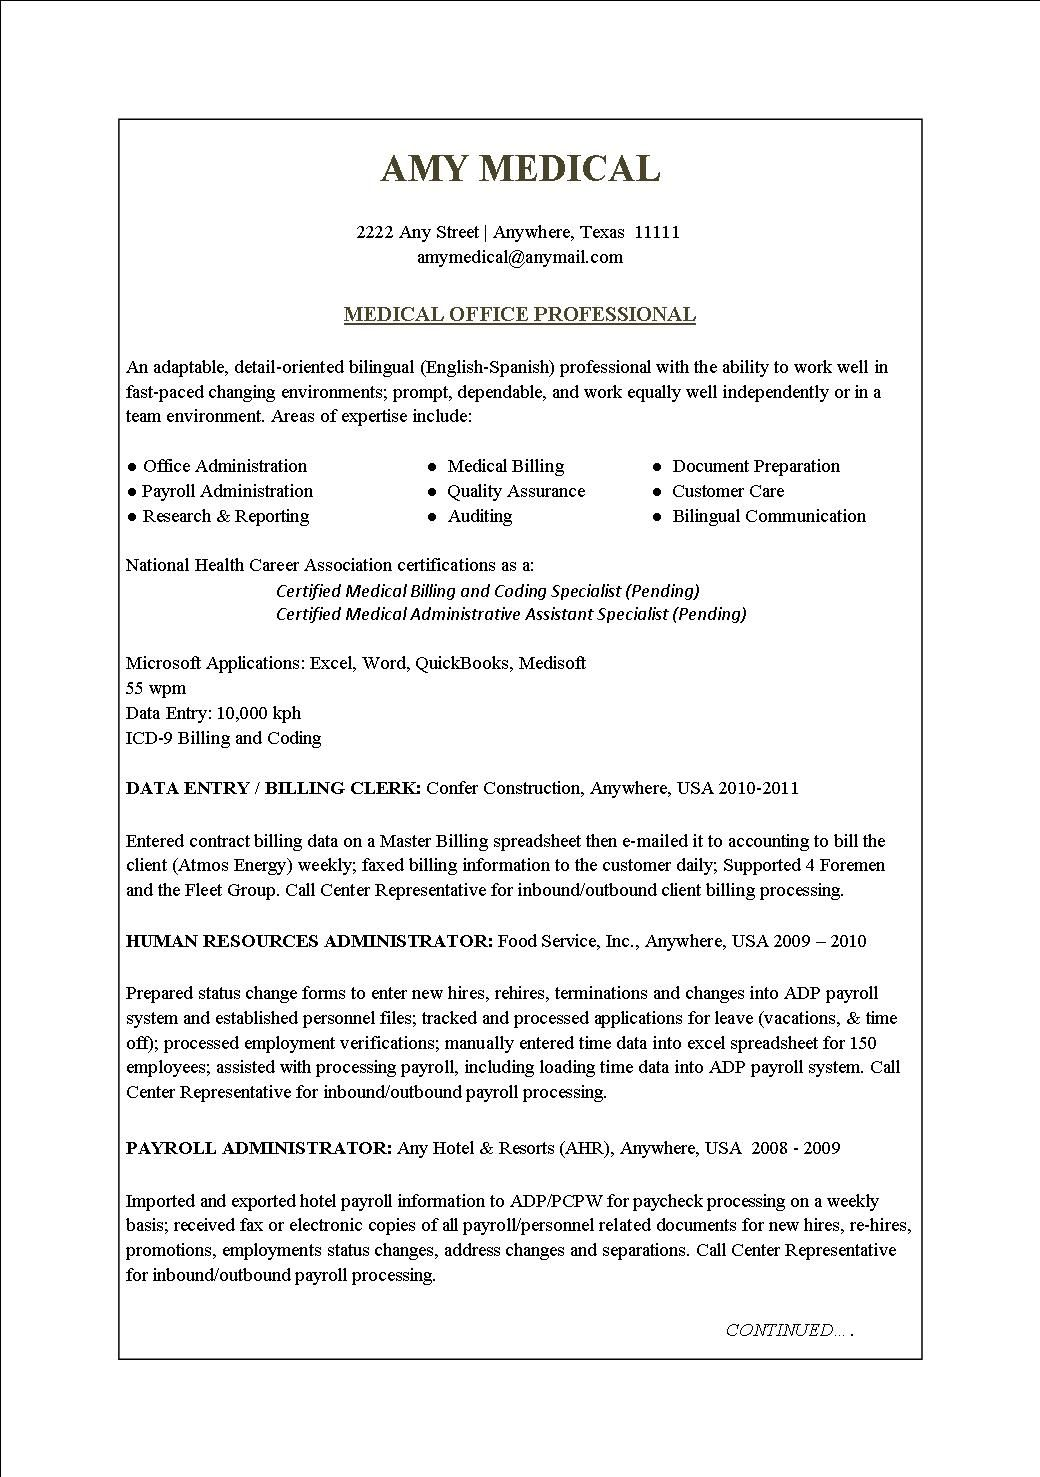 Good Medical Administrative Specialist Sample Resume Surprising Medical Office  Resume 14 Resume Sample Receptionist Or . Inside Medical Professional Resume